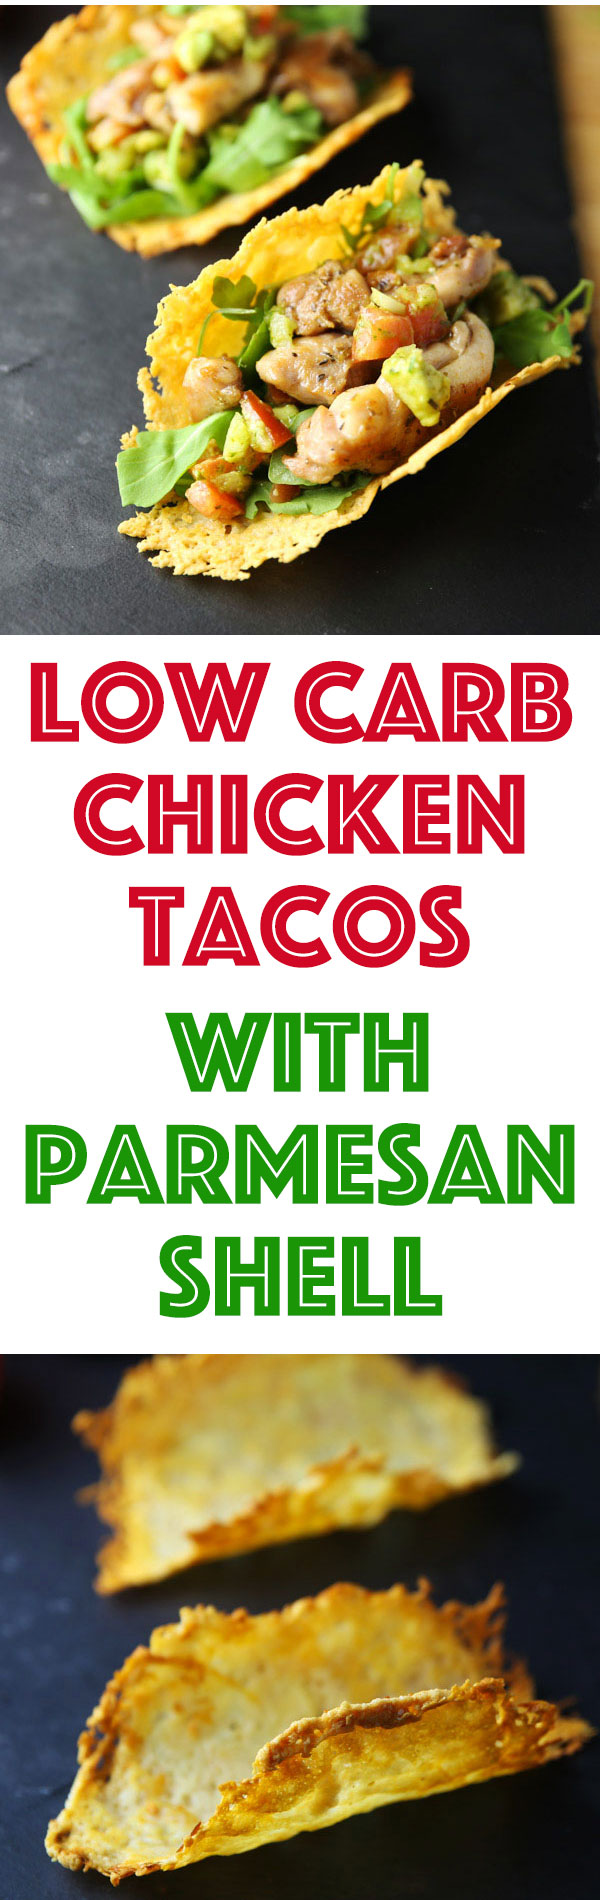 These Chicken Tacos are made Low Carb with a Parmesan Shell! Using Parmesan Cheese to create the taco shell gives this such a unique flavor and holds together much better than traditional taco shells!